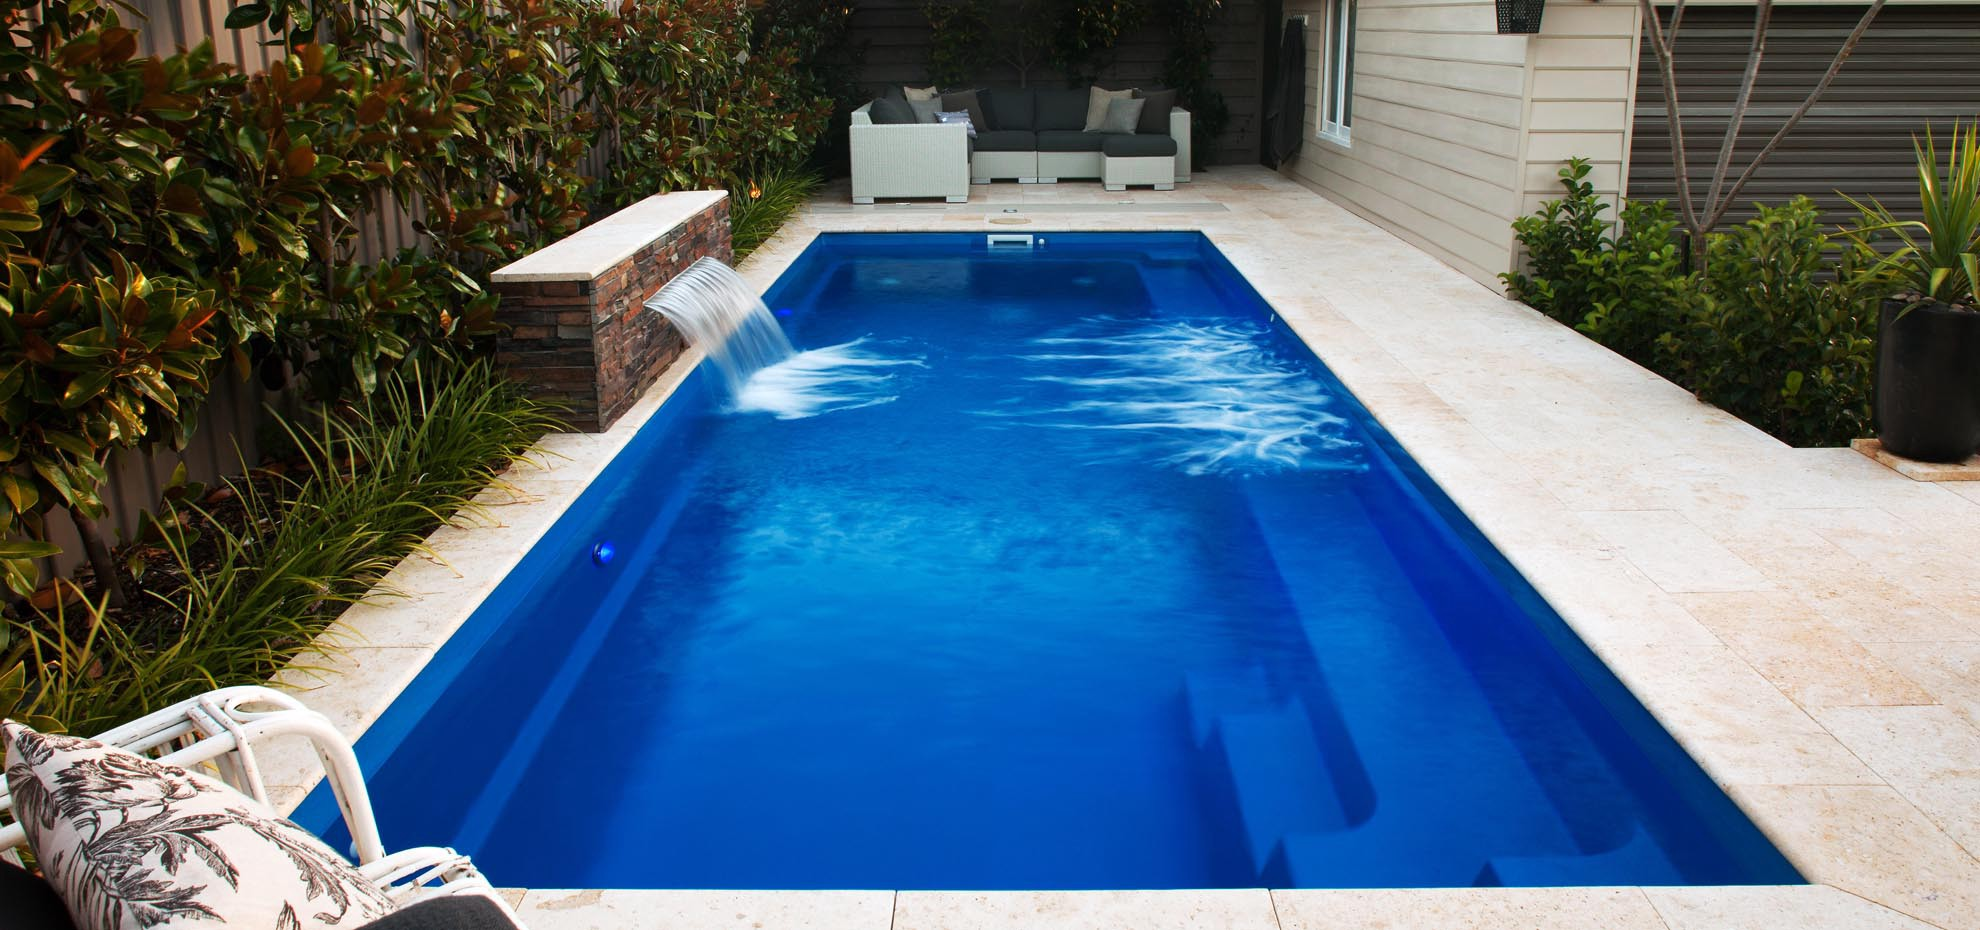 Make Your Dream Pool A Reality At Your Own Home - David Raid ...